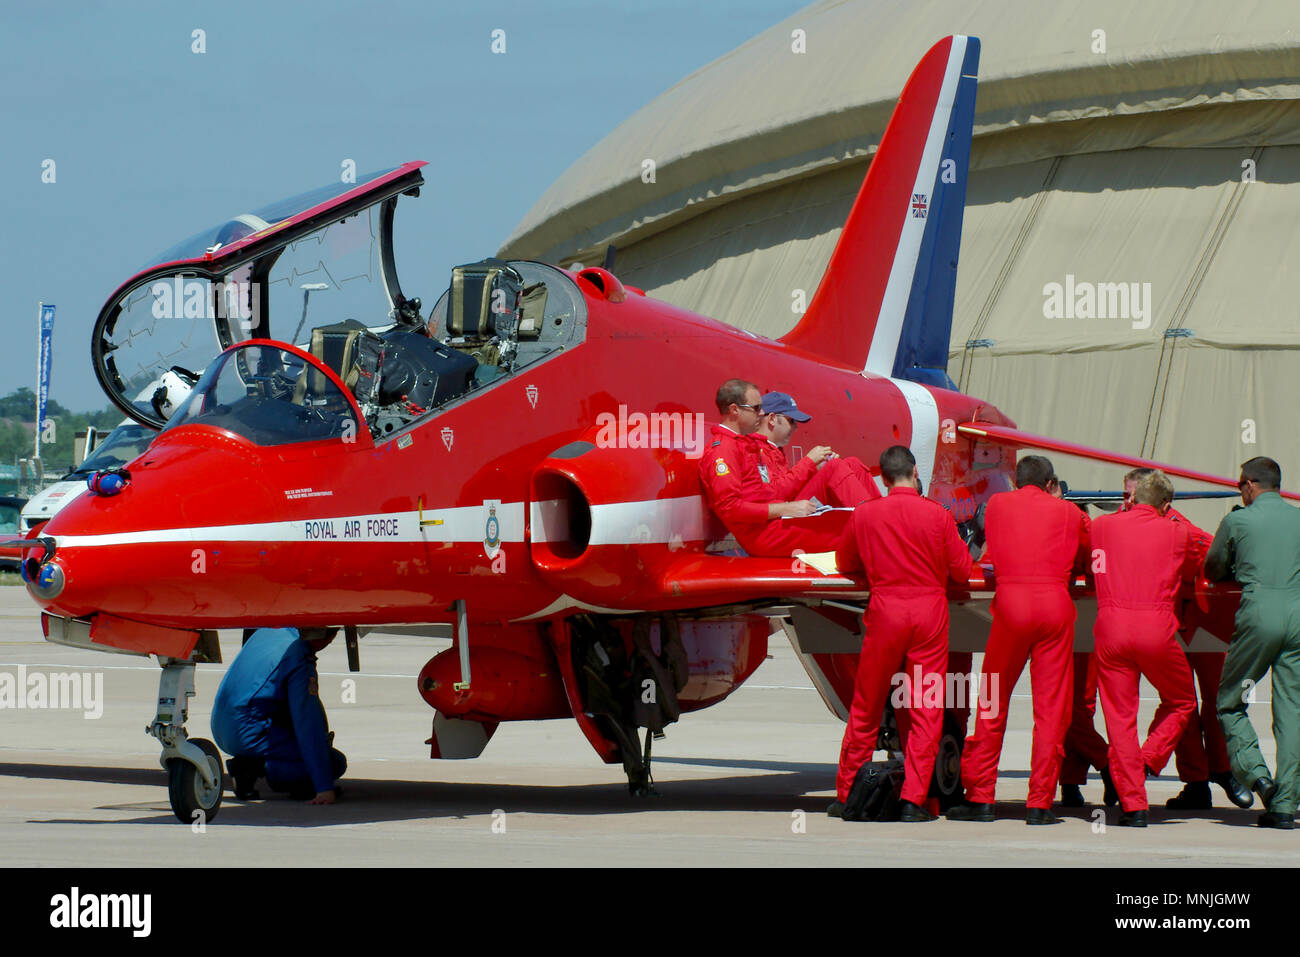 red-arrows-pilots-using-the-wing-of-a-royal-air-force-raf-red-arrows-hawk-t1-to-brief-for-a-display-at-an-airshow-engineers-cockpit-canopy-open-MNJGMW.jpg